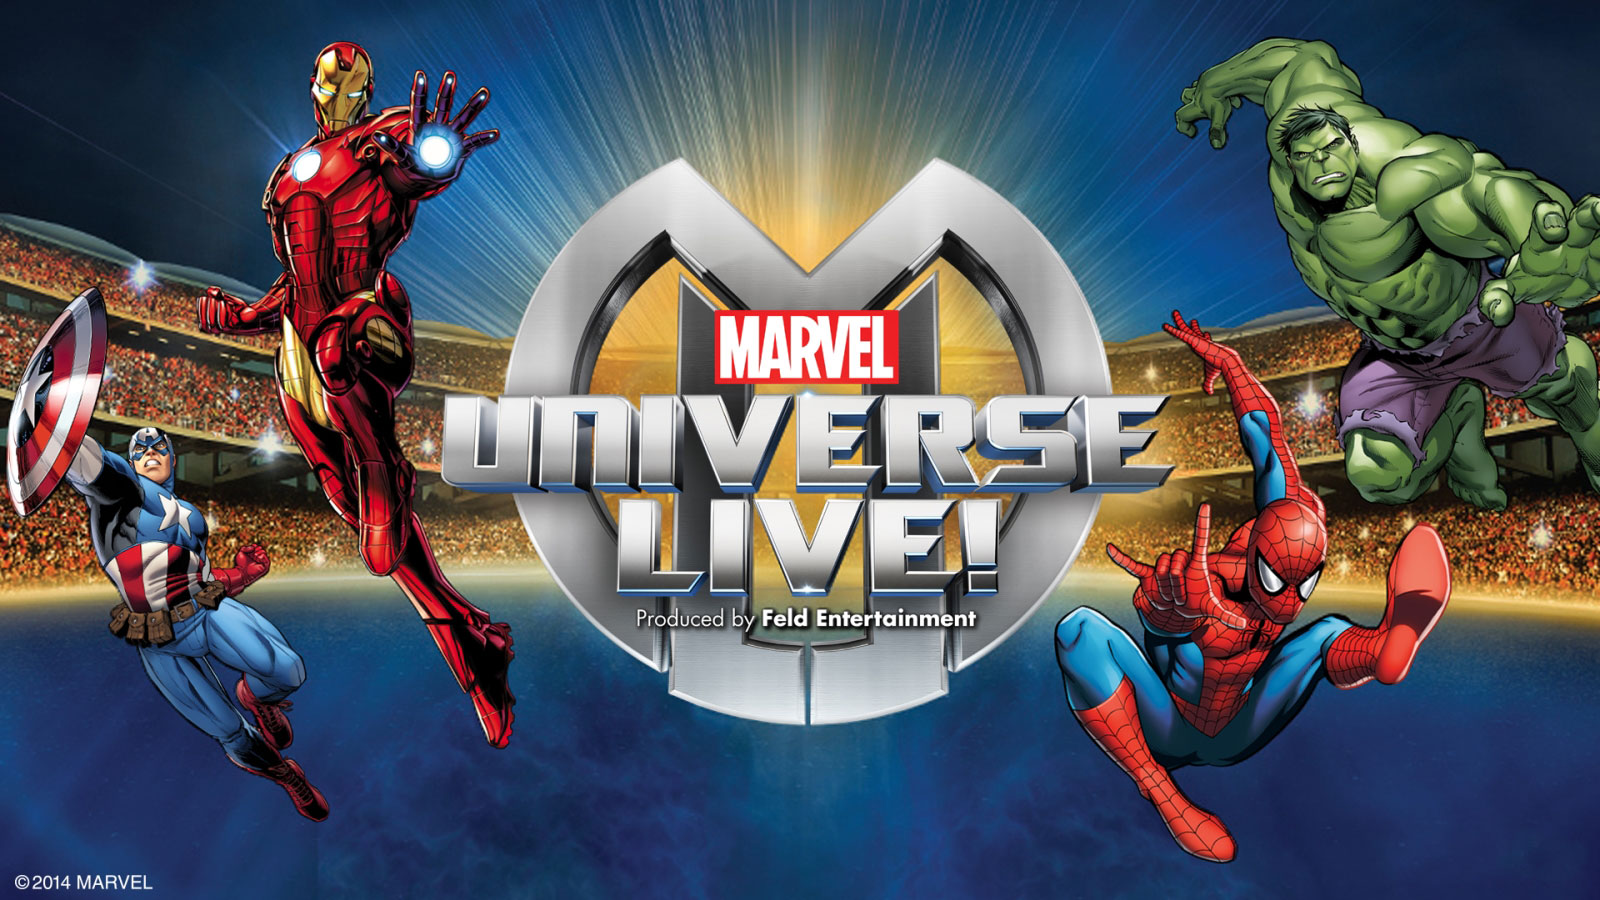 ant farm: marvel universe live!: animated content